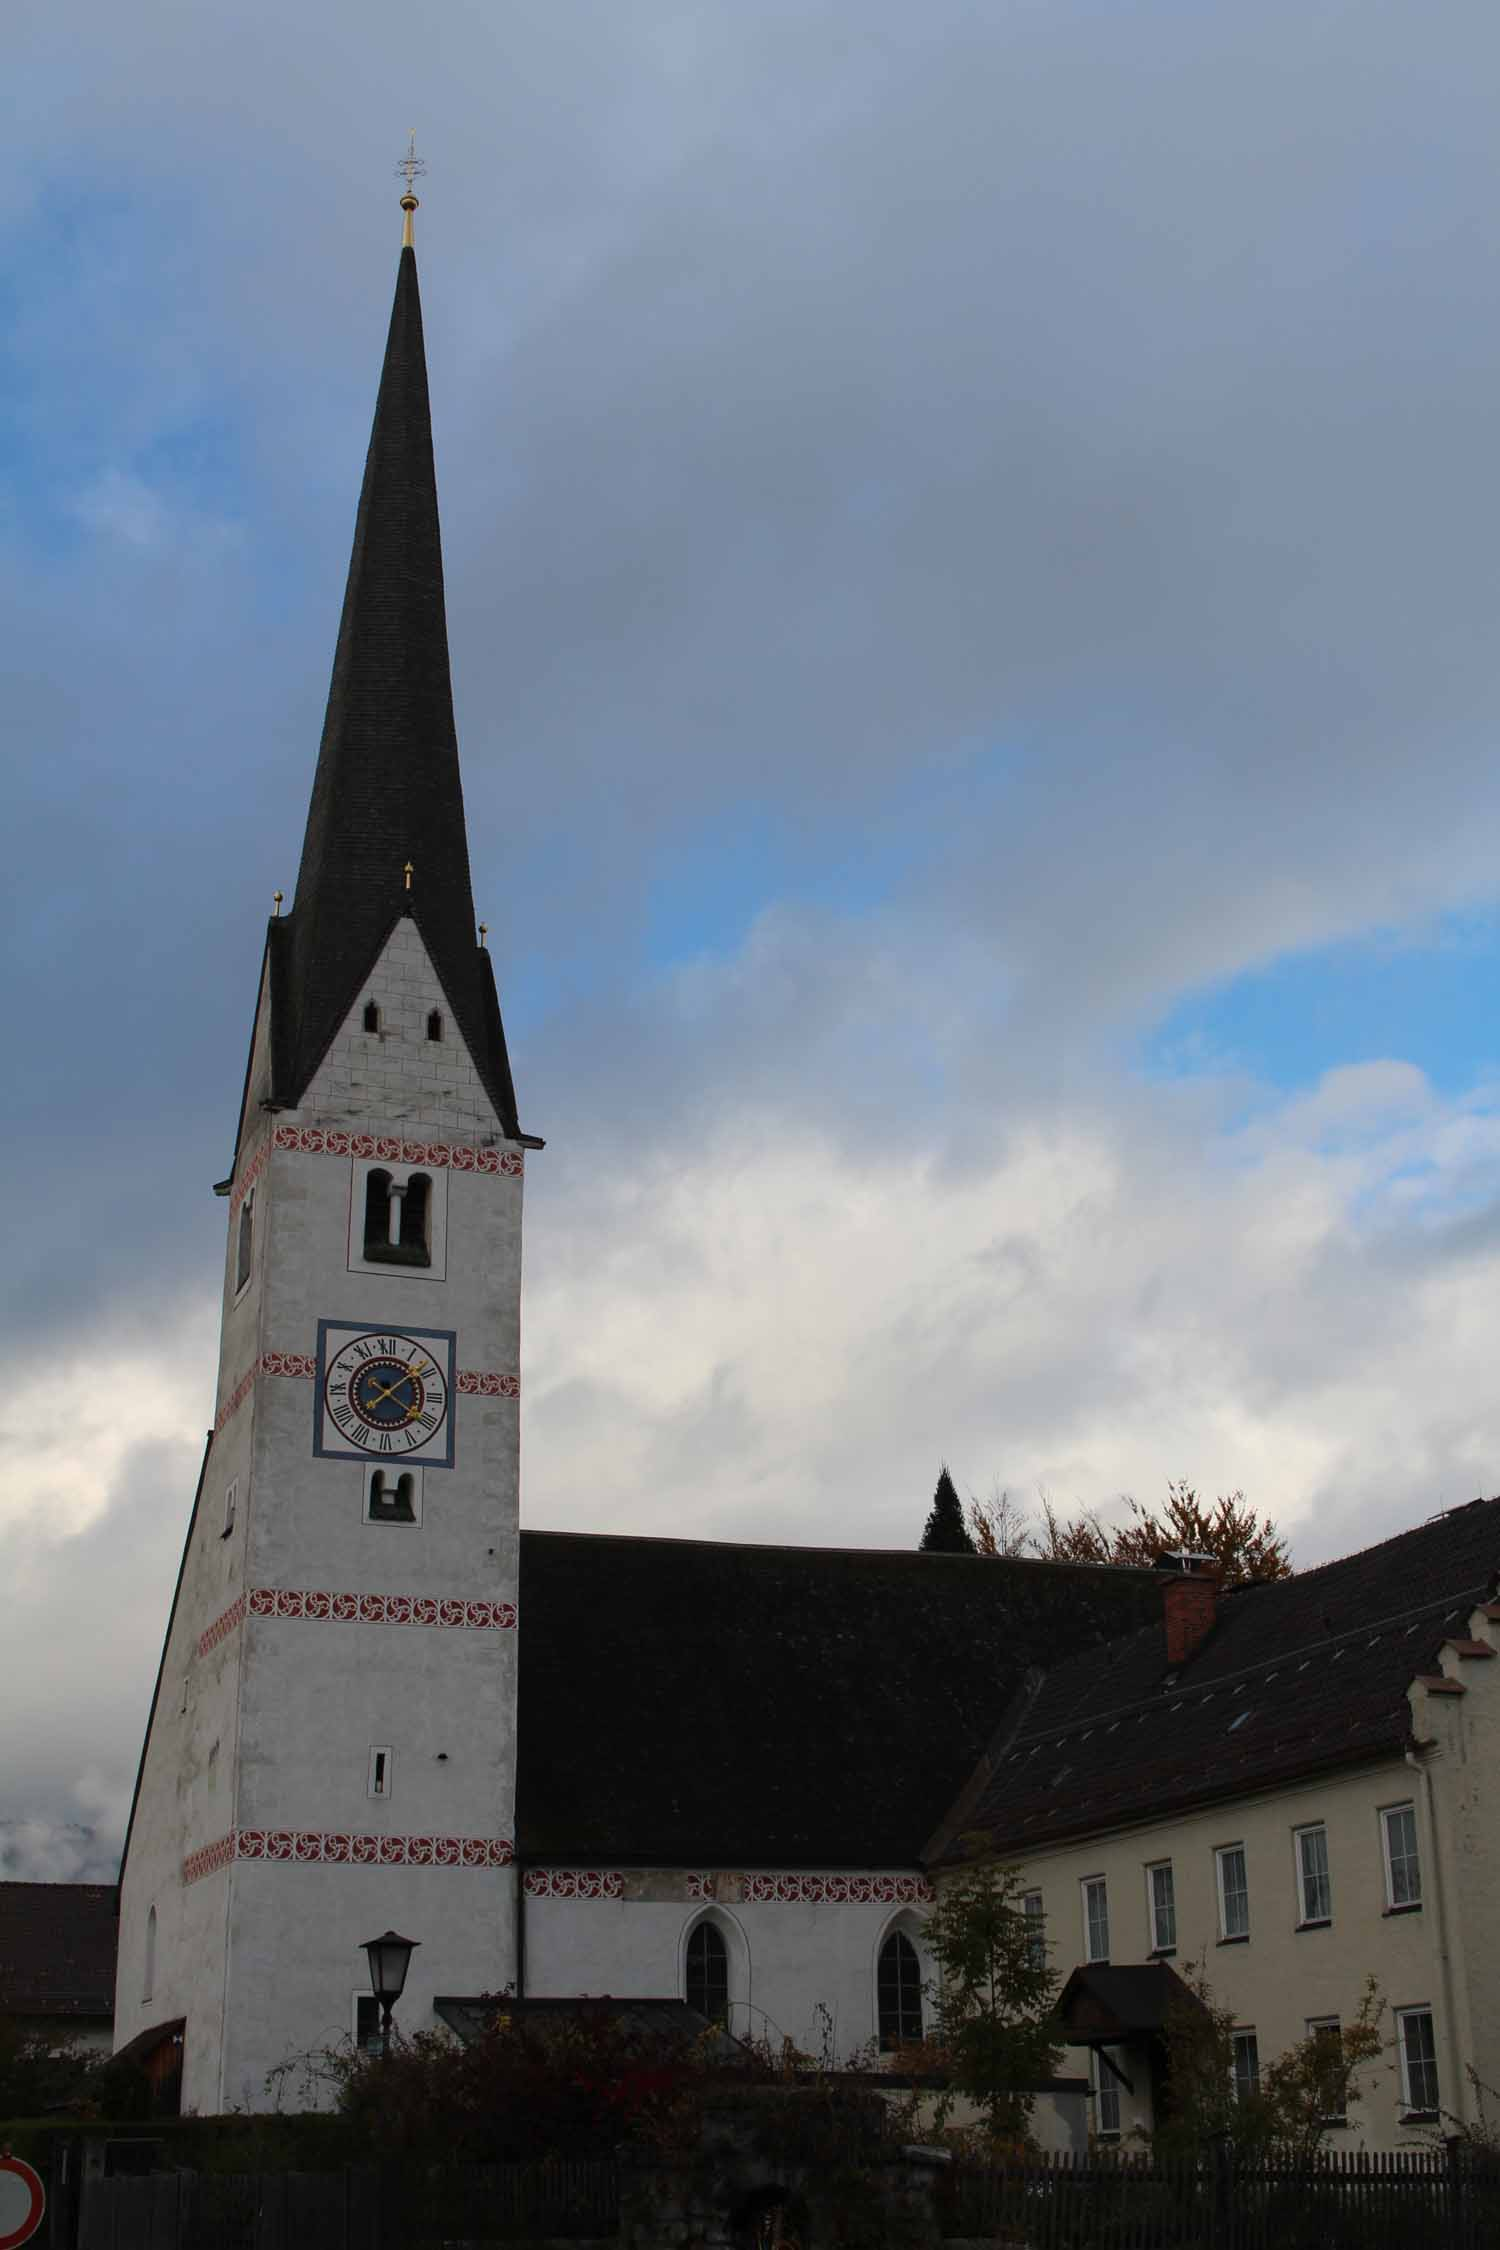 The old church St. Martin of Garmisch-Partenkirchen